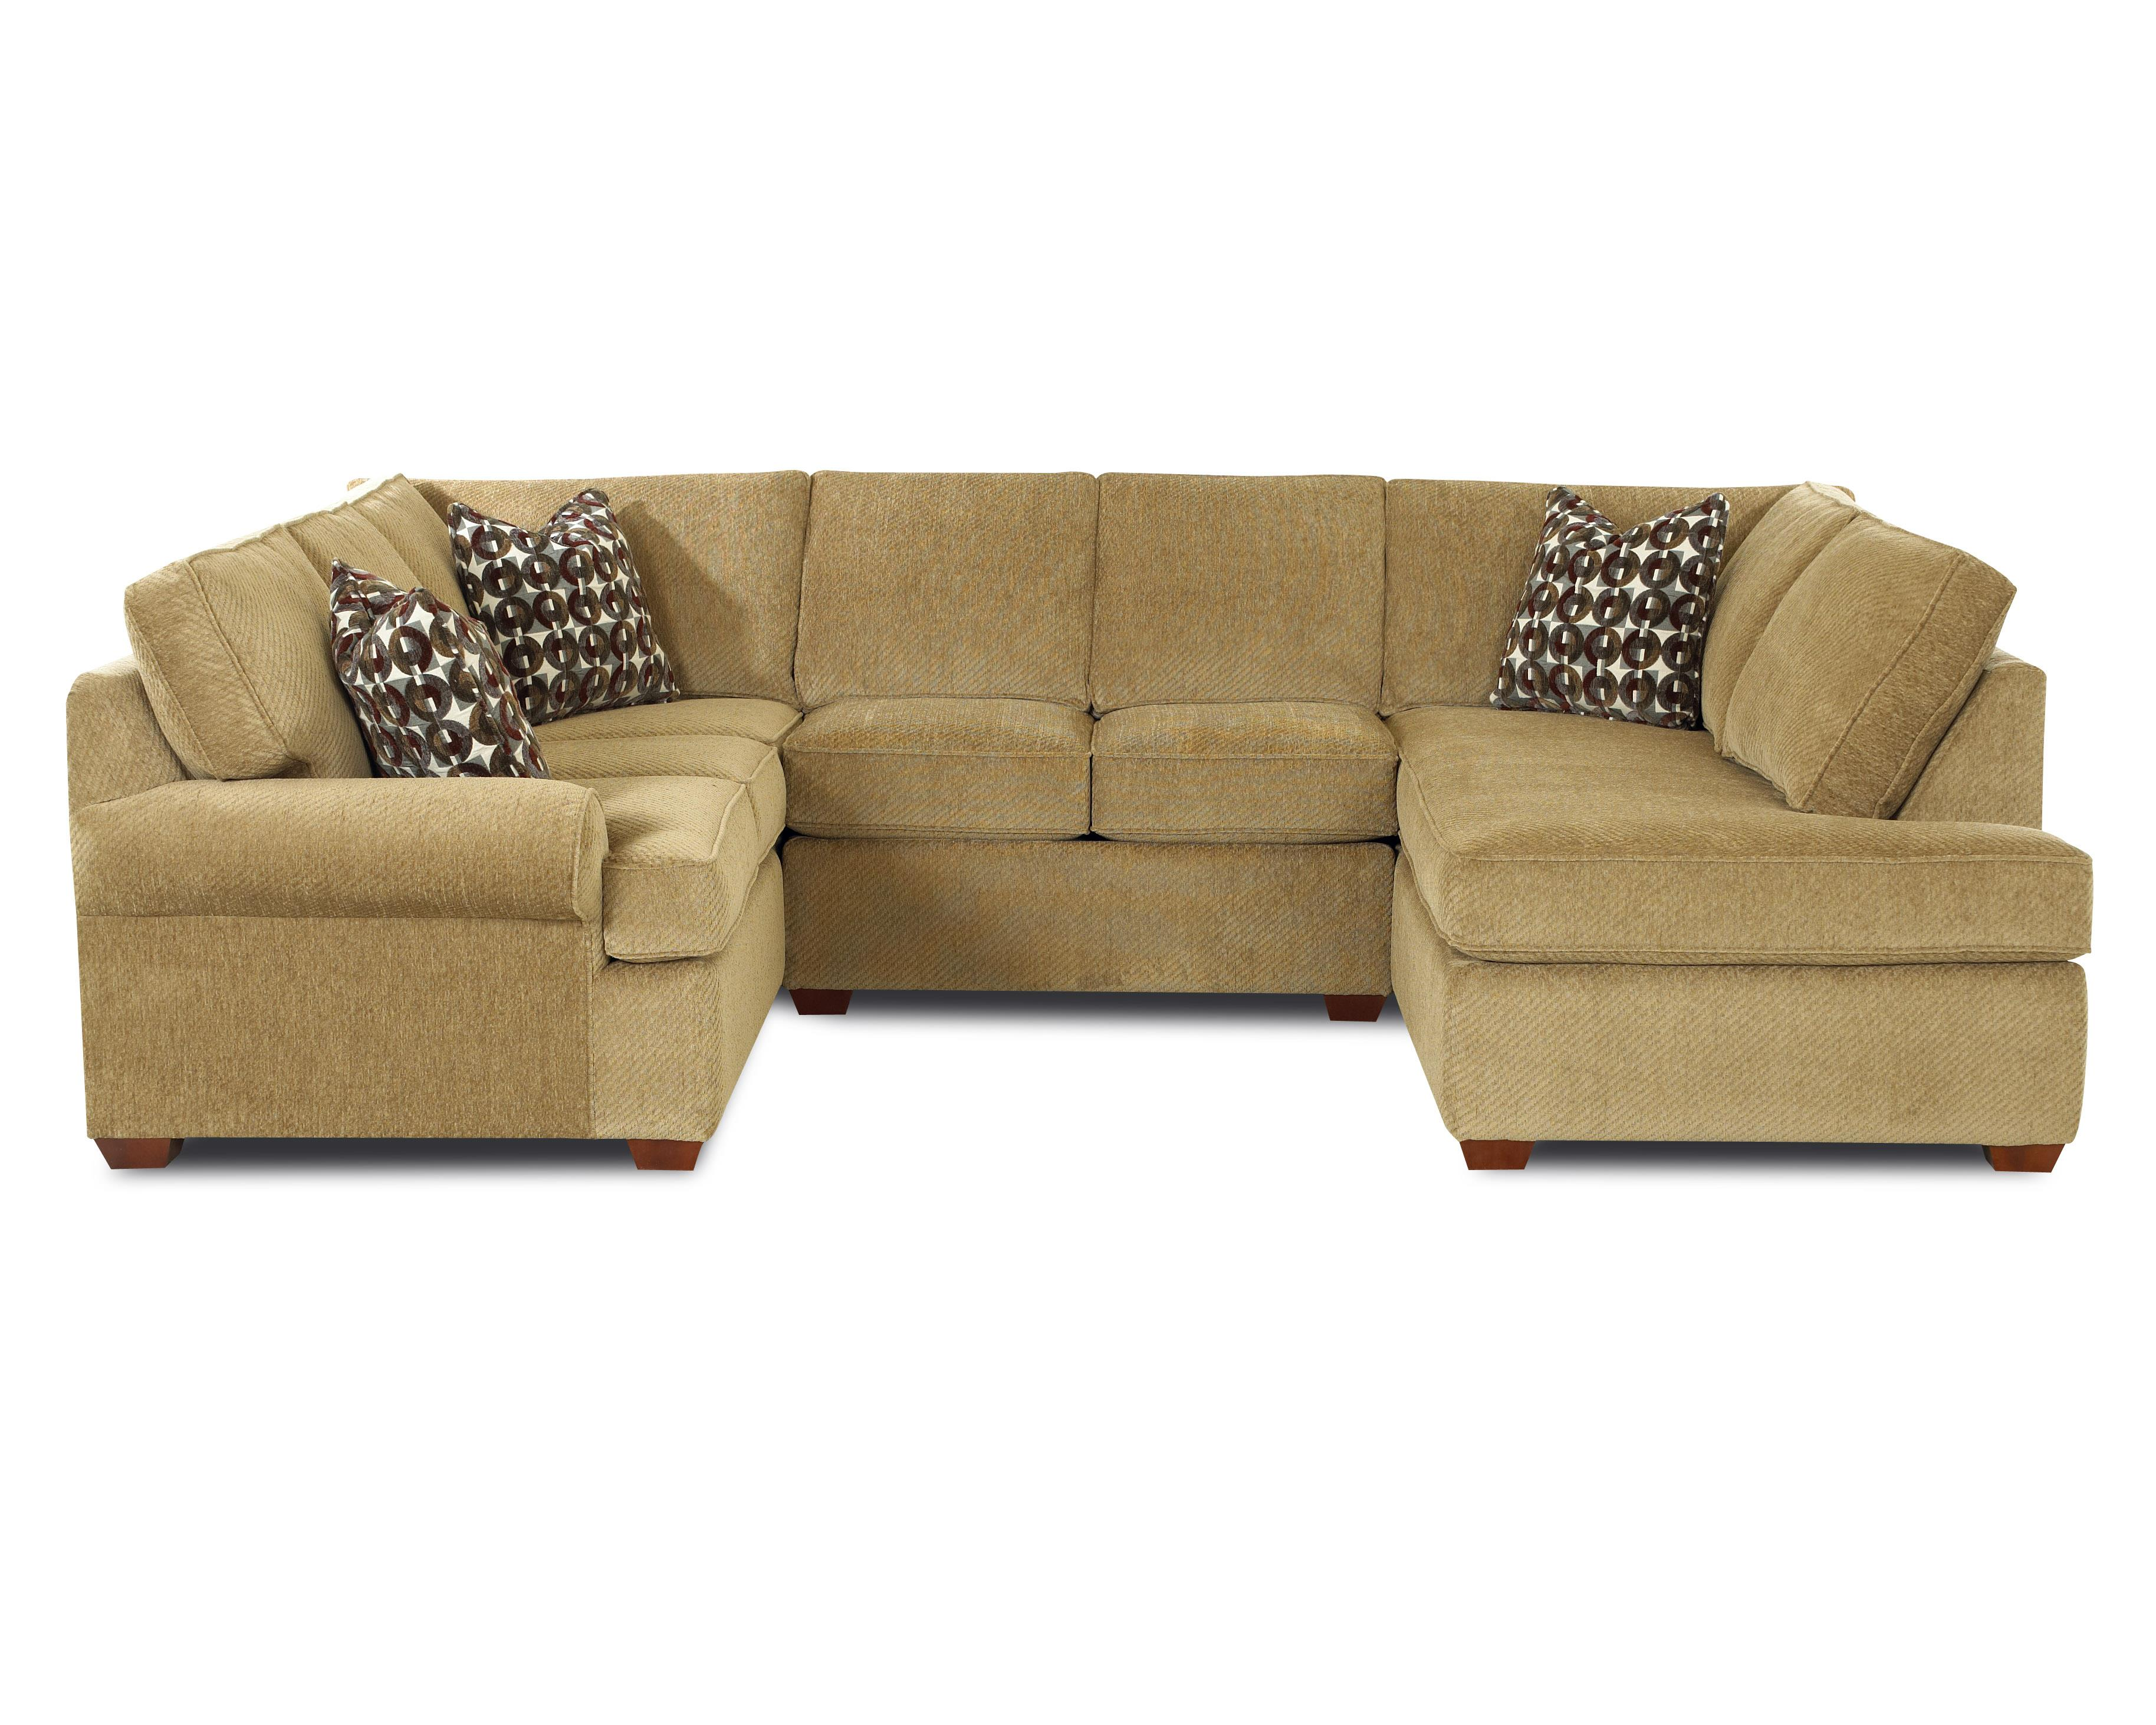 Klaussner Troupe Sectional Sofa Dunk Amp Bright Furniture